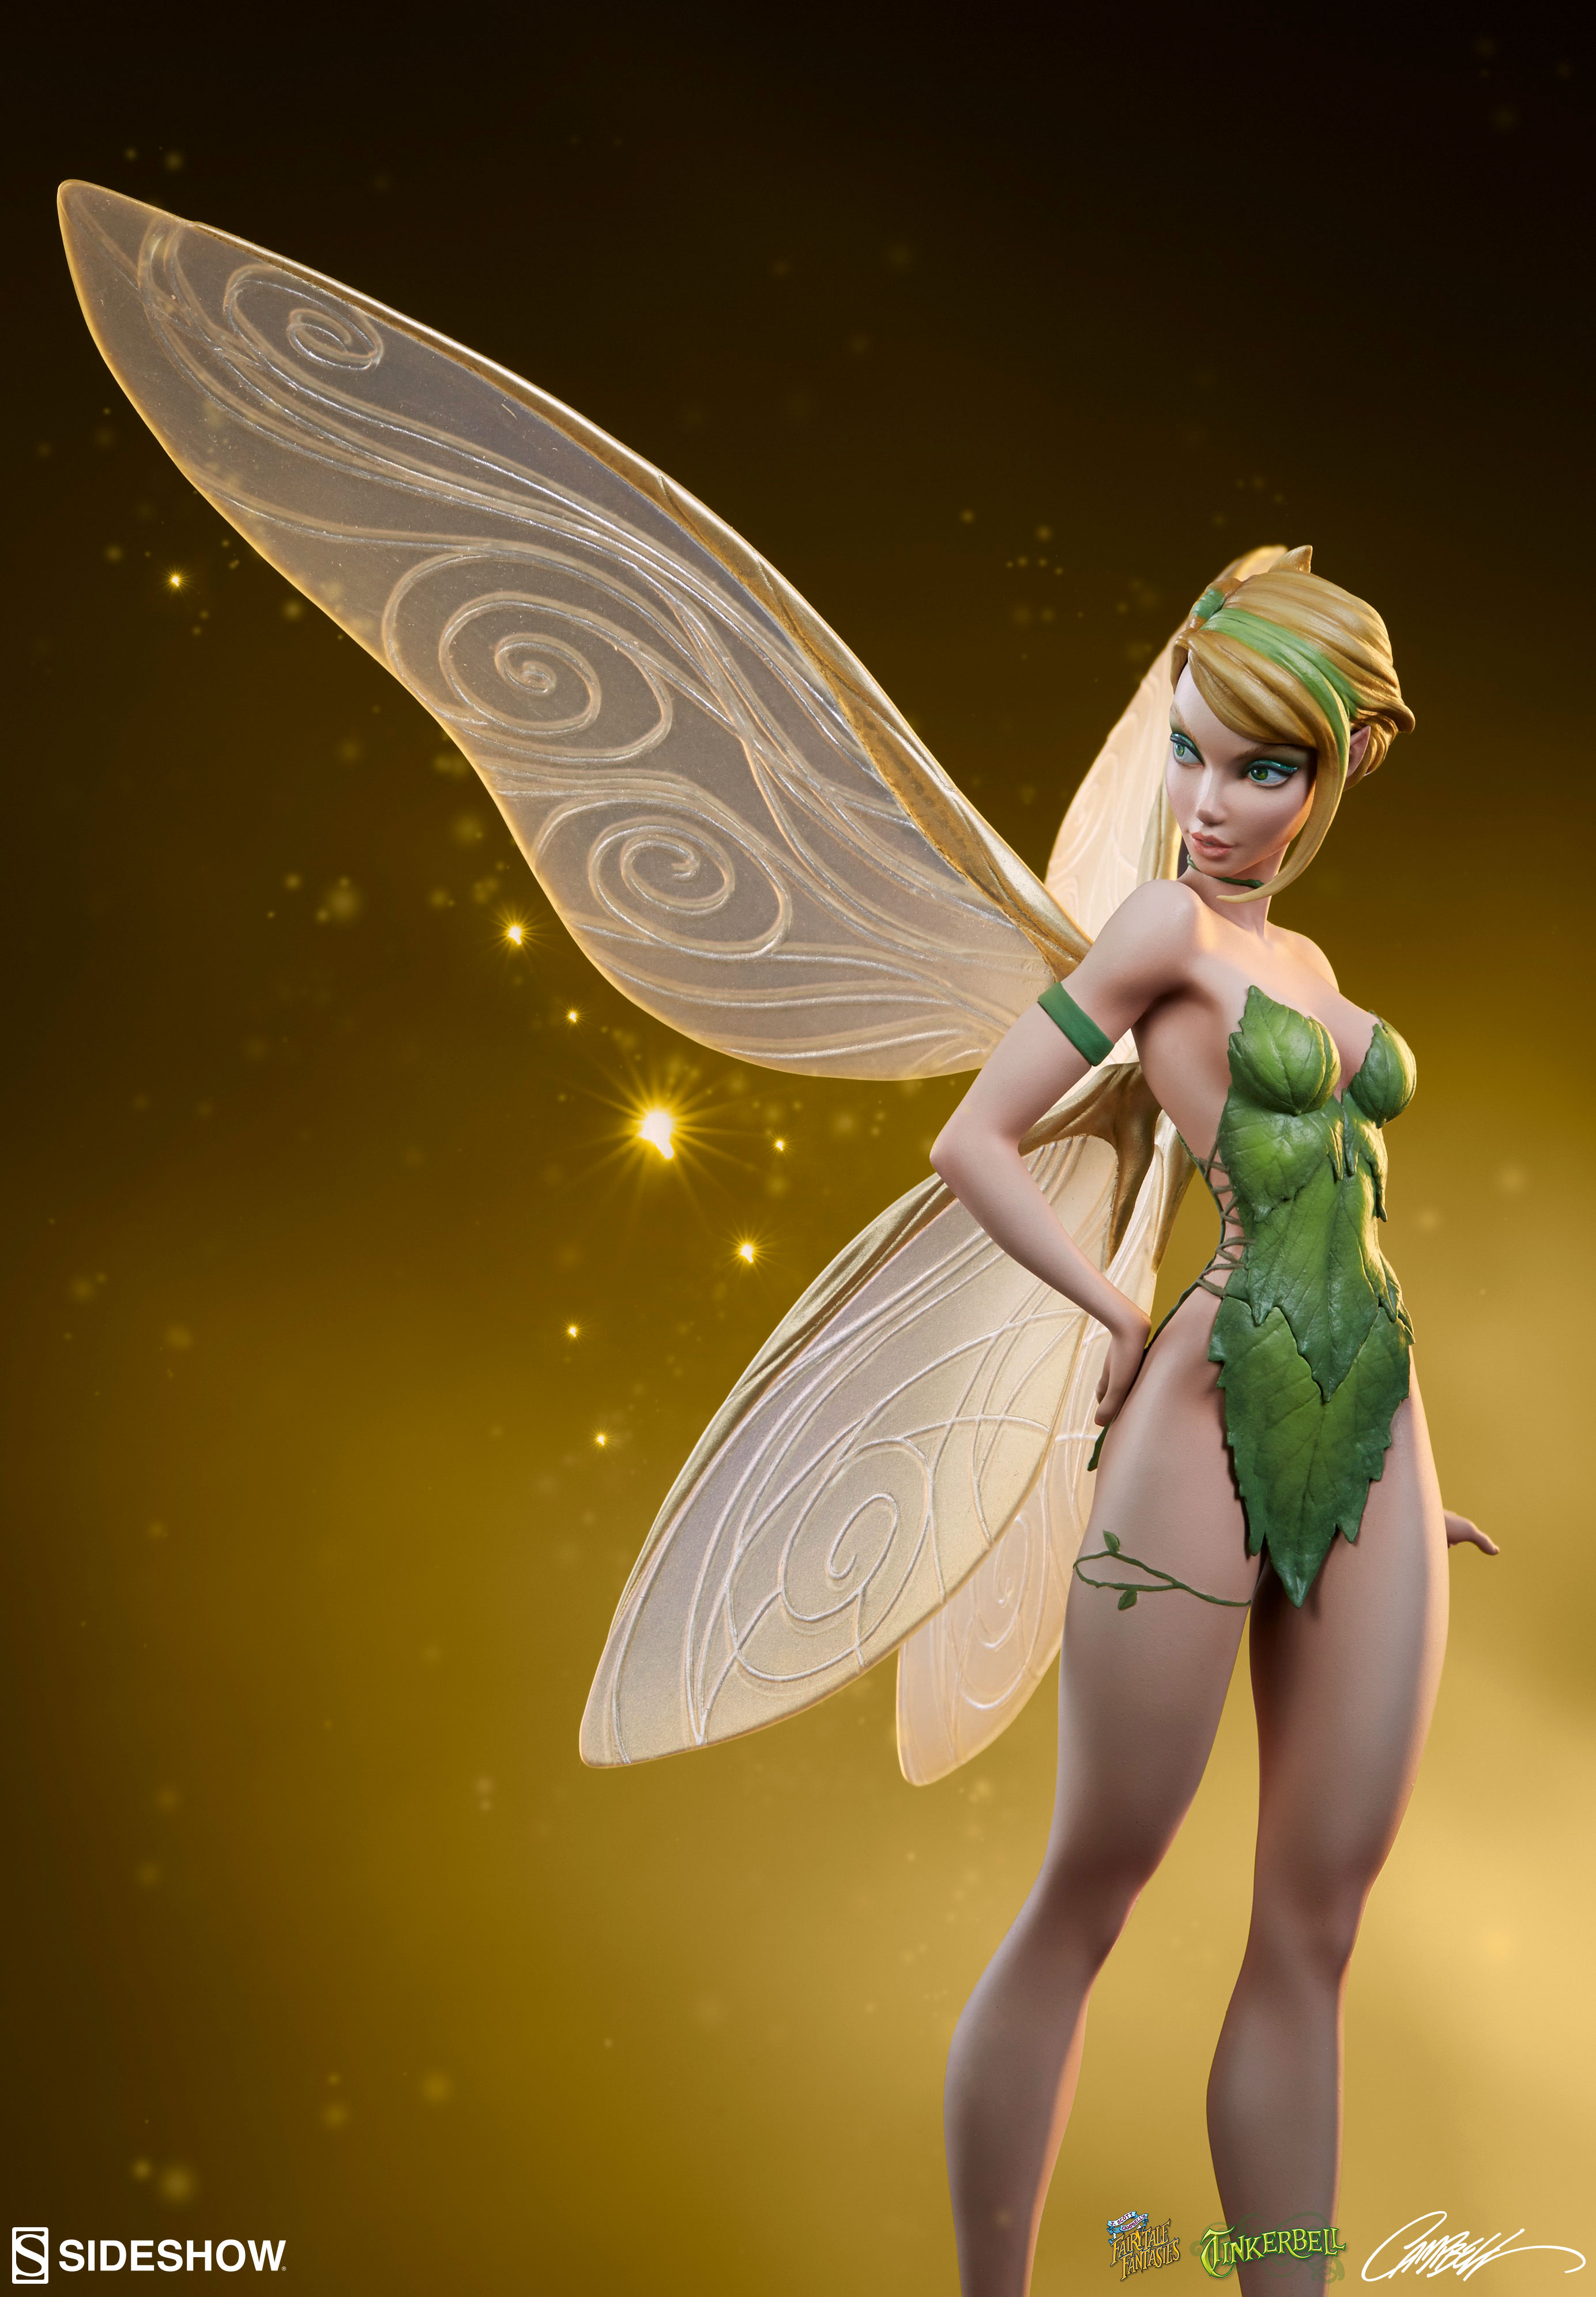 Sideshow Collectibles Tinkerbell Statue Coming Soon ...